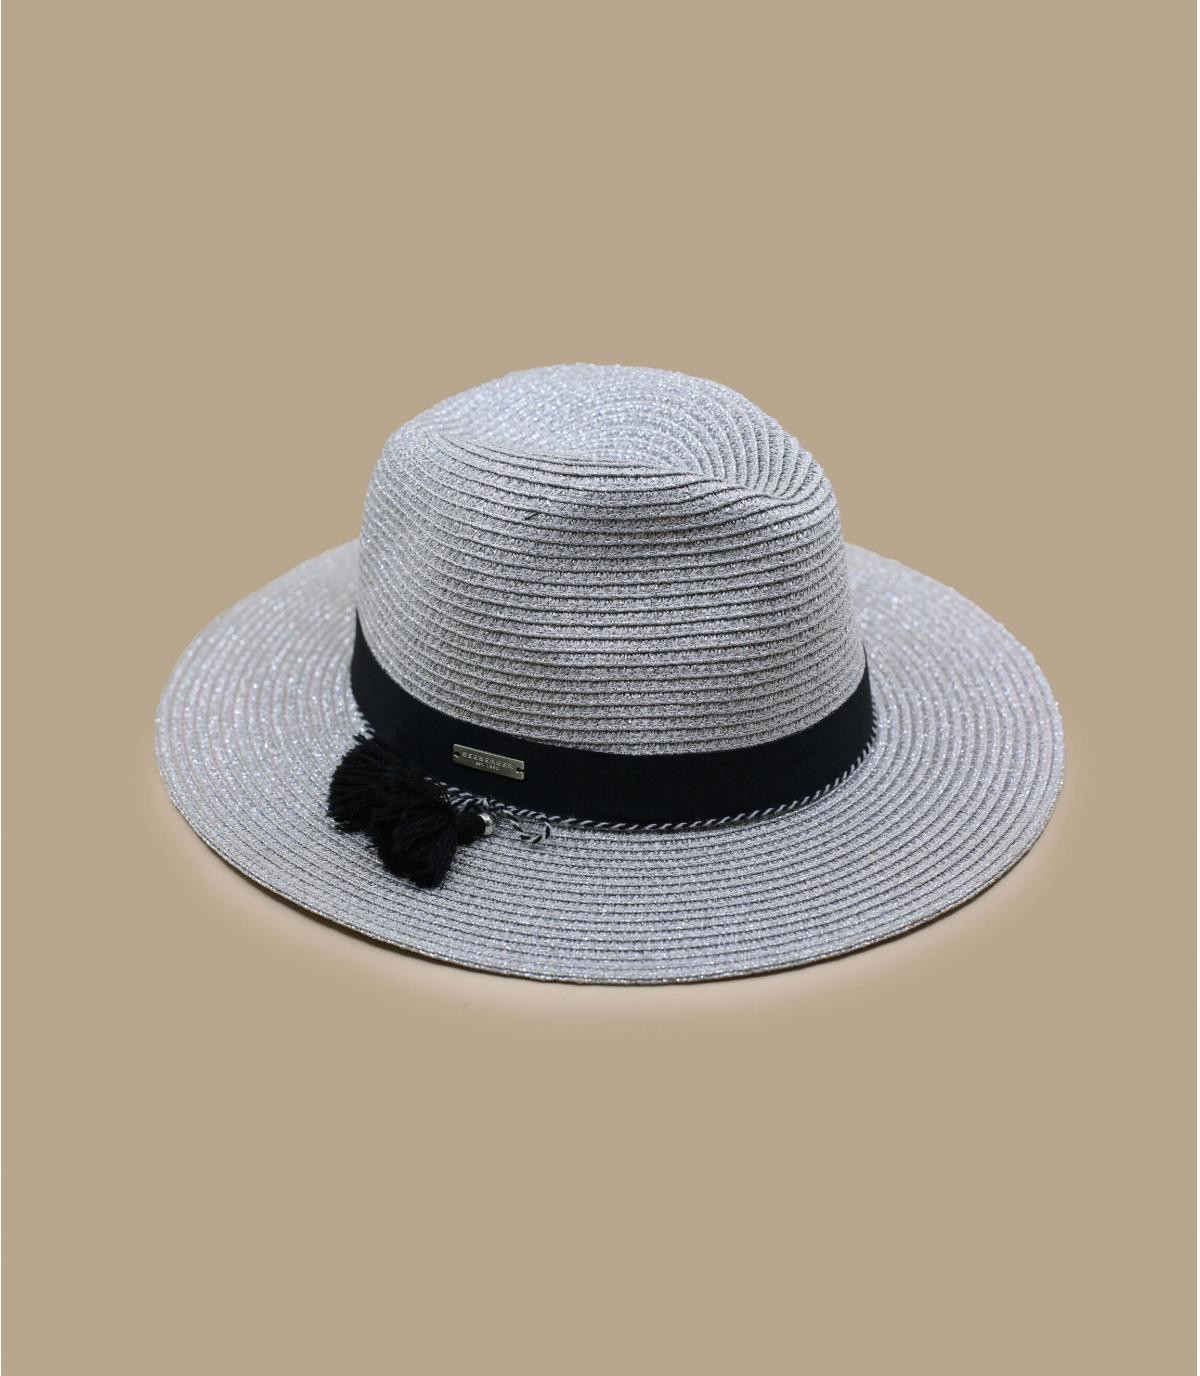 Détails Fedora in shiny braid light grey - image 2